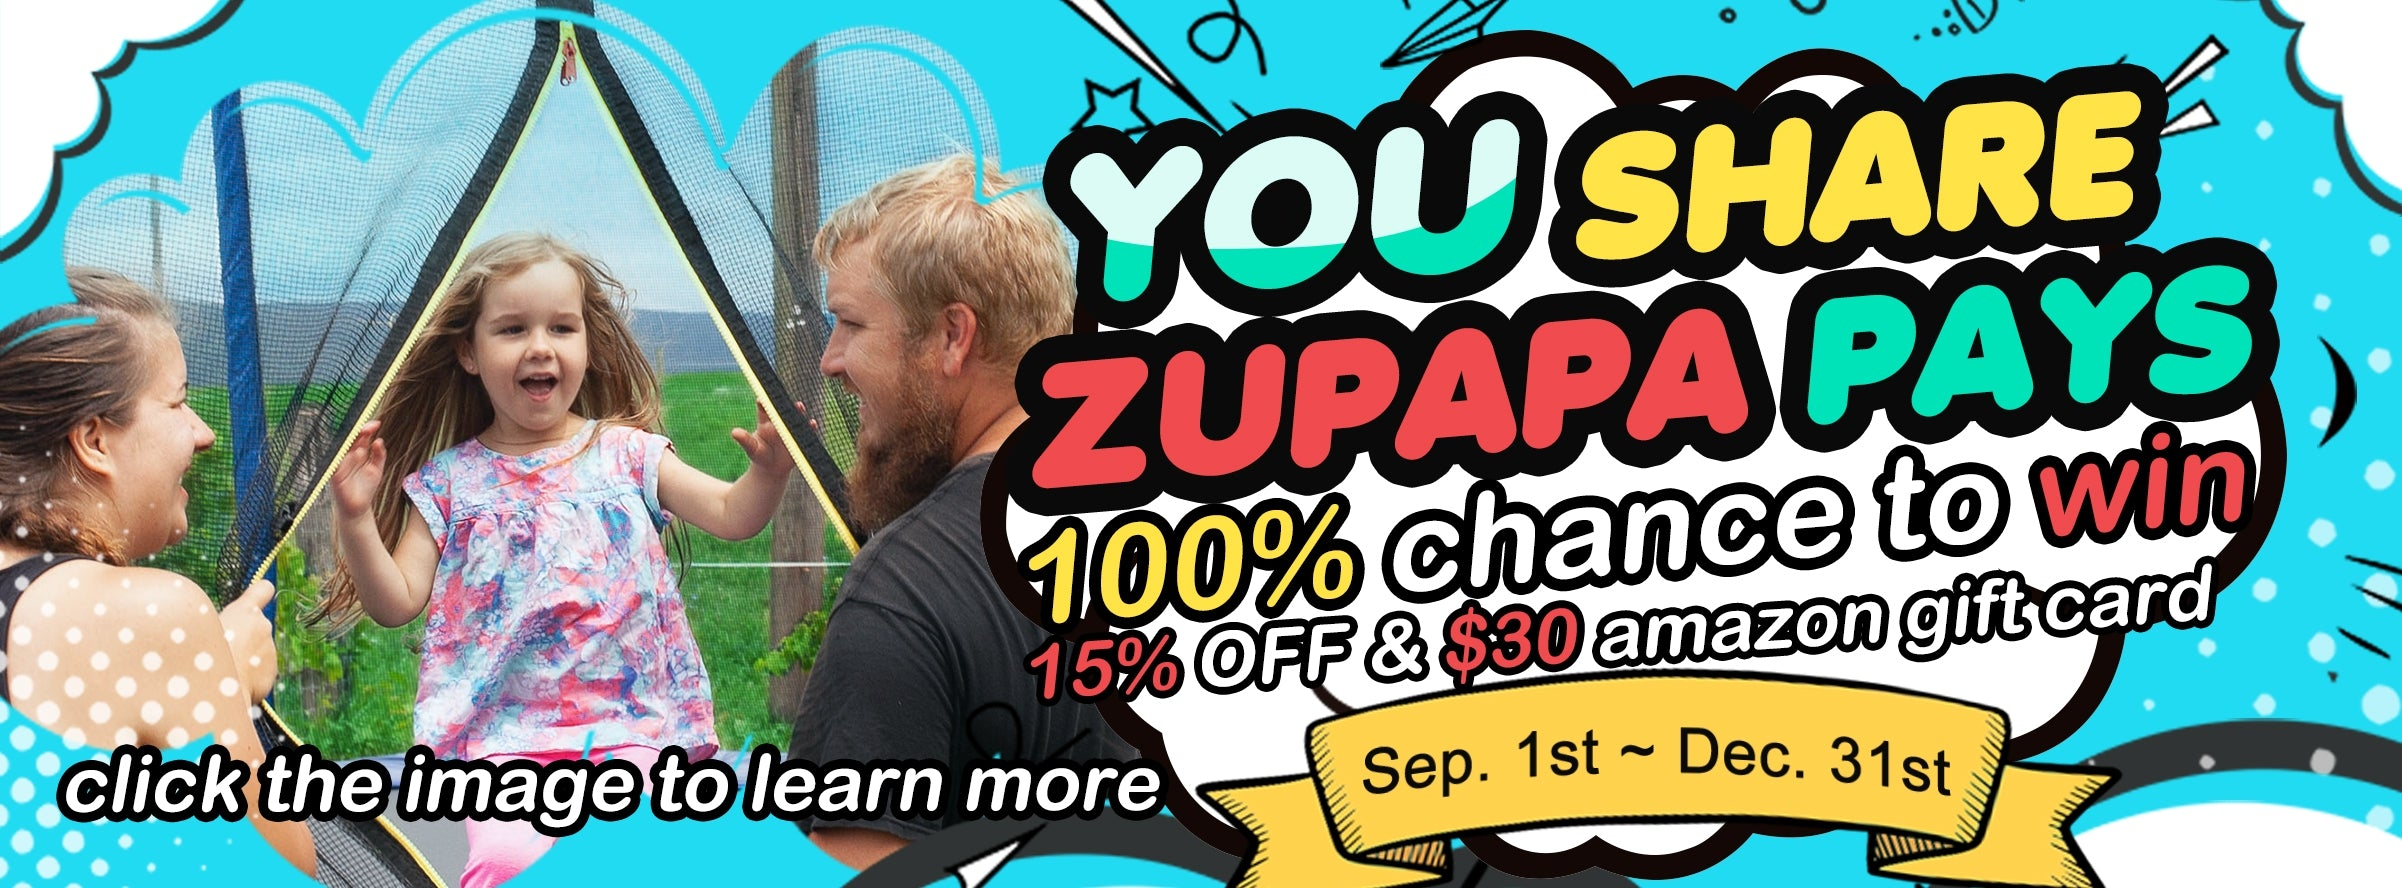 zupapa trampoline giveaway only for customers